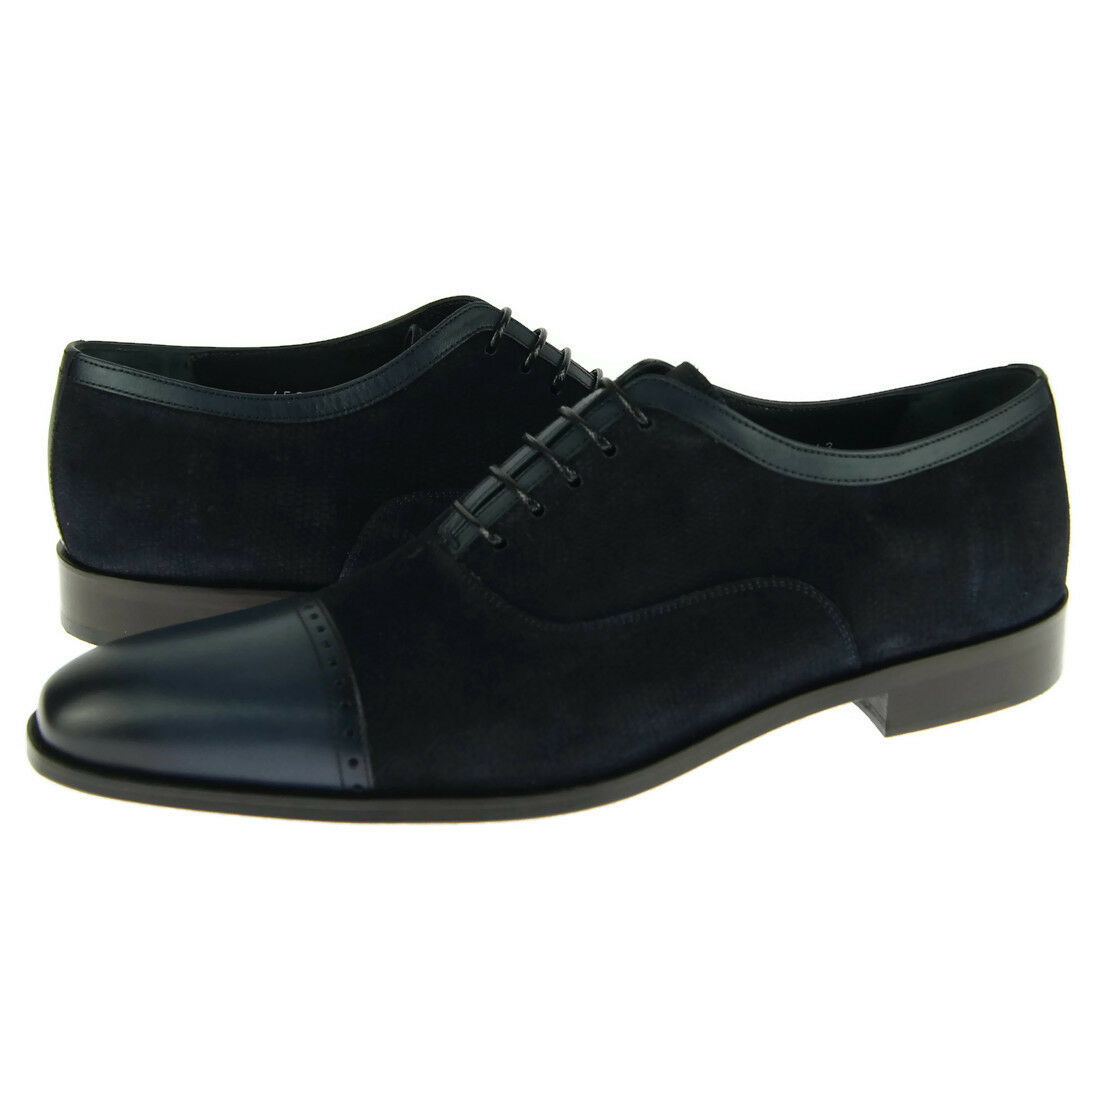 Corrente 4560 Cap Toe Oxford, Suede/Leather Men's Dress Shoes, Blue